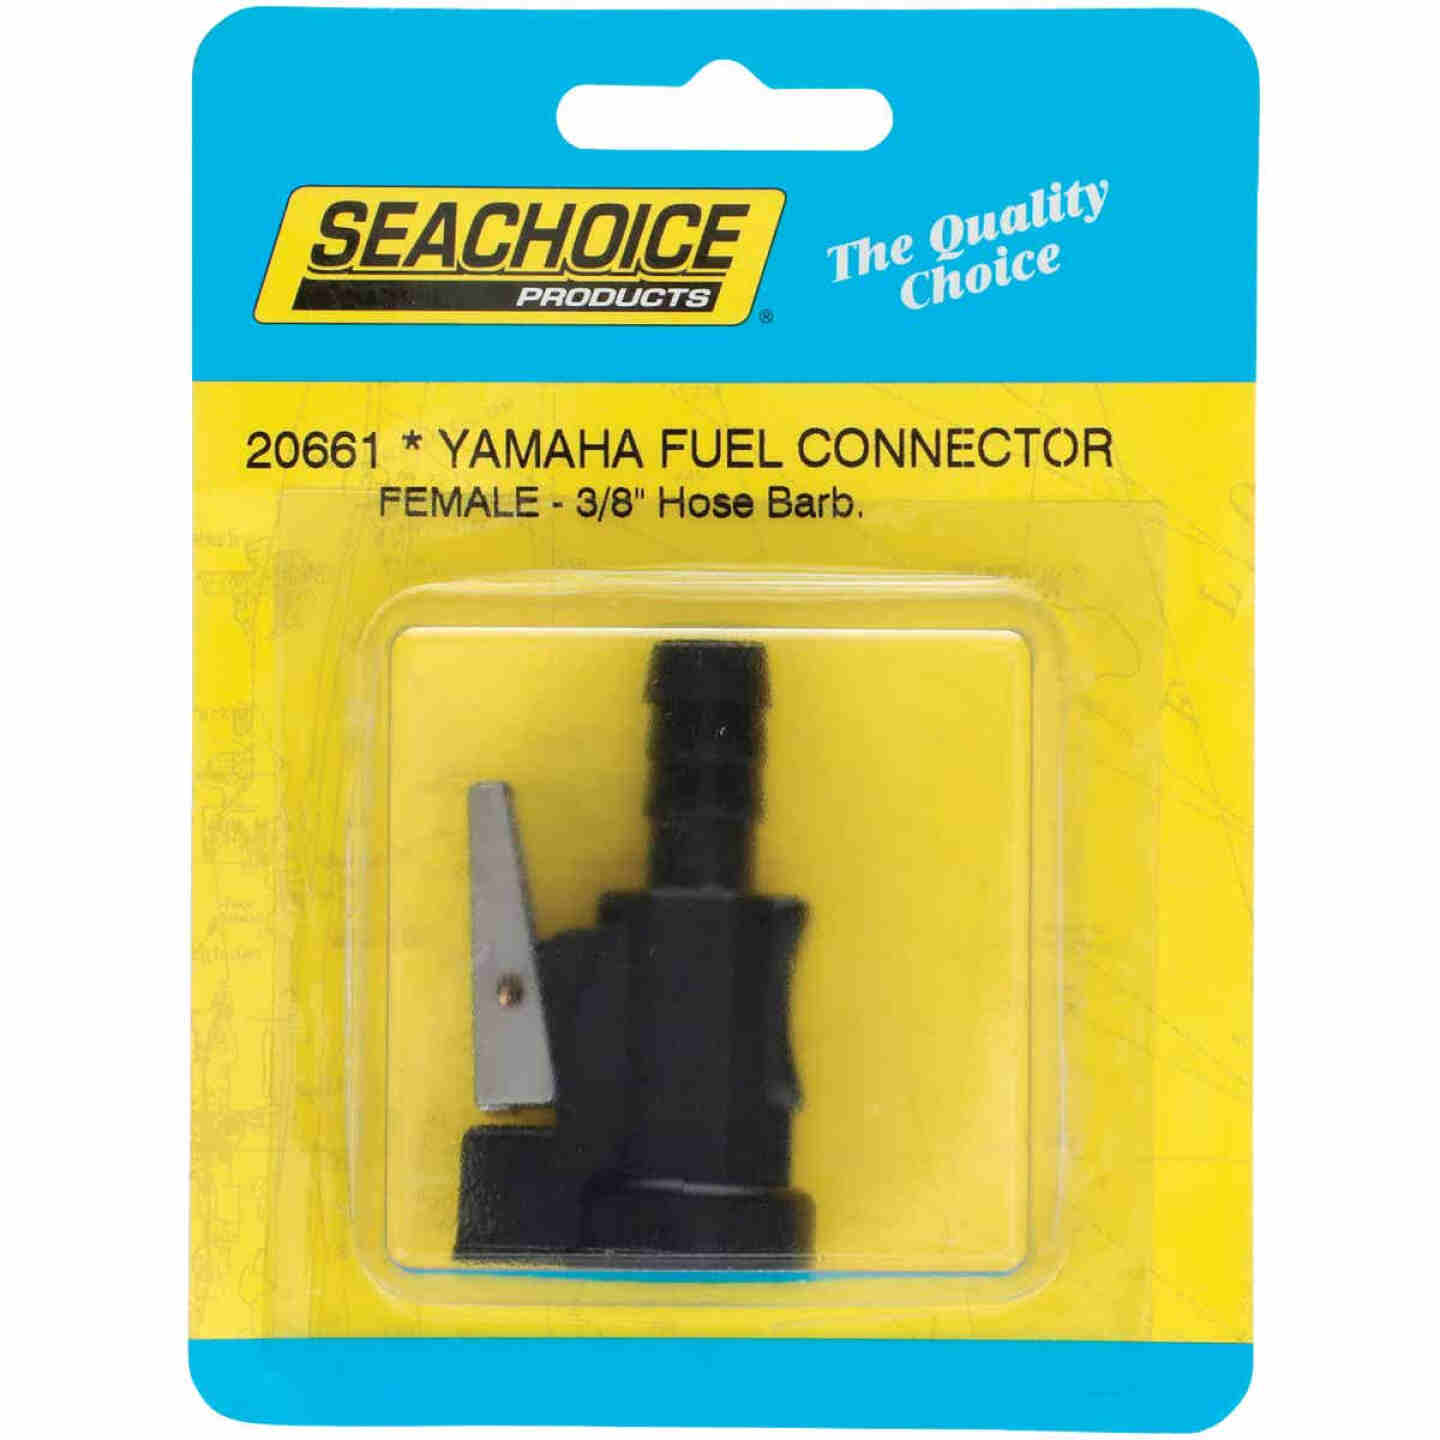 Seachoice 3/8 In. Female Hose Barb Yamaha/Mercury/Mariner Fuel Connector Image 1